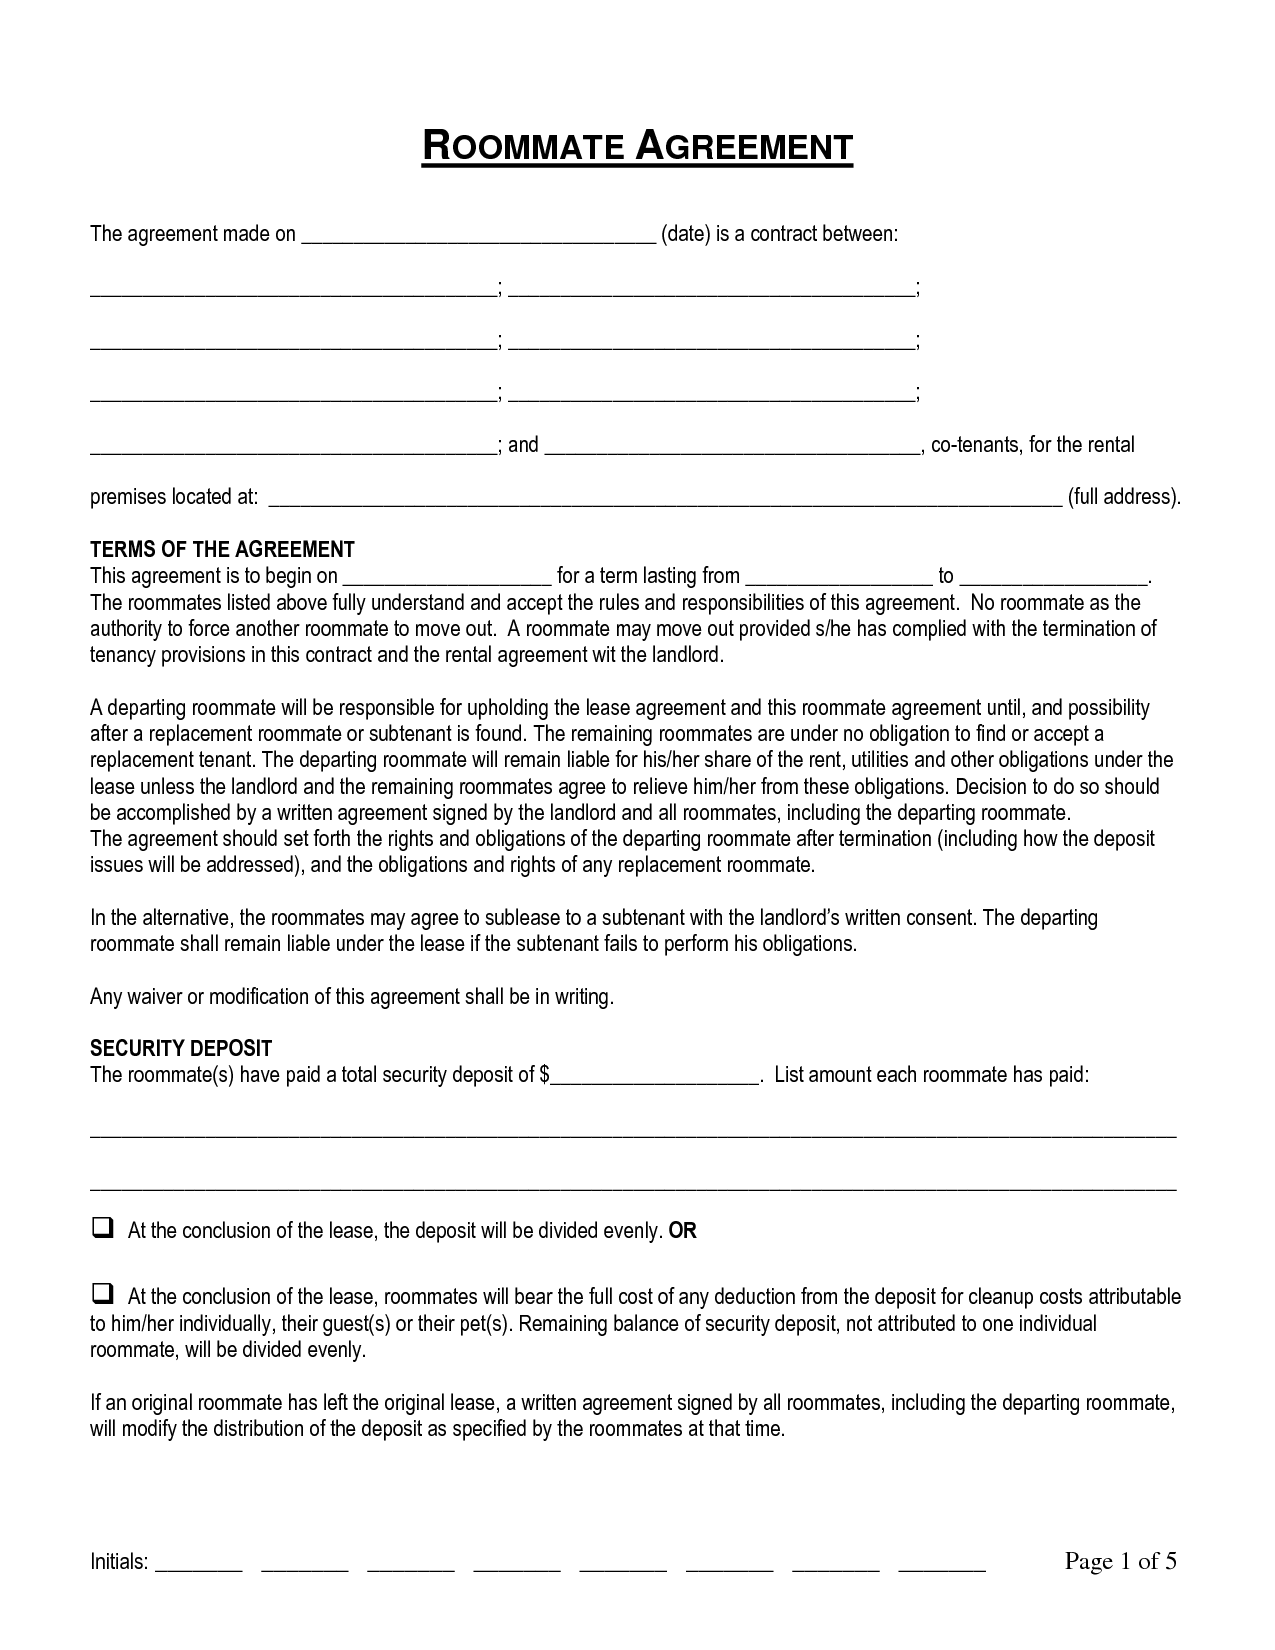 Termination Of Roommate Agreement By Pqo69567   Roommate Contract Agreement  Form  Free Room Rental Lease Agreement Template